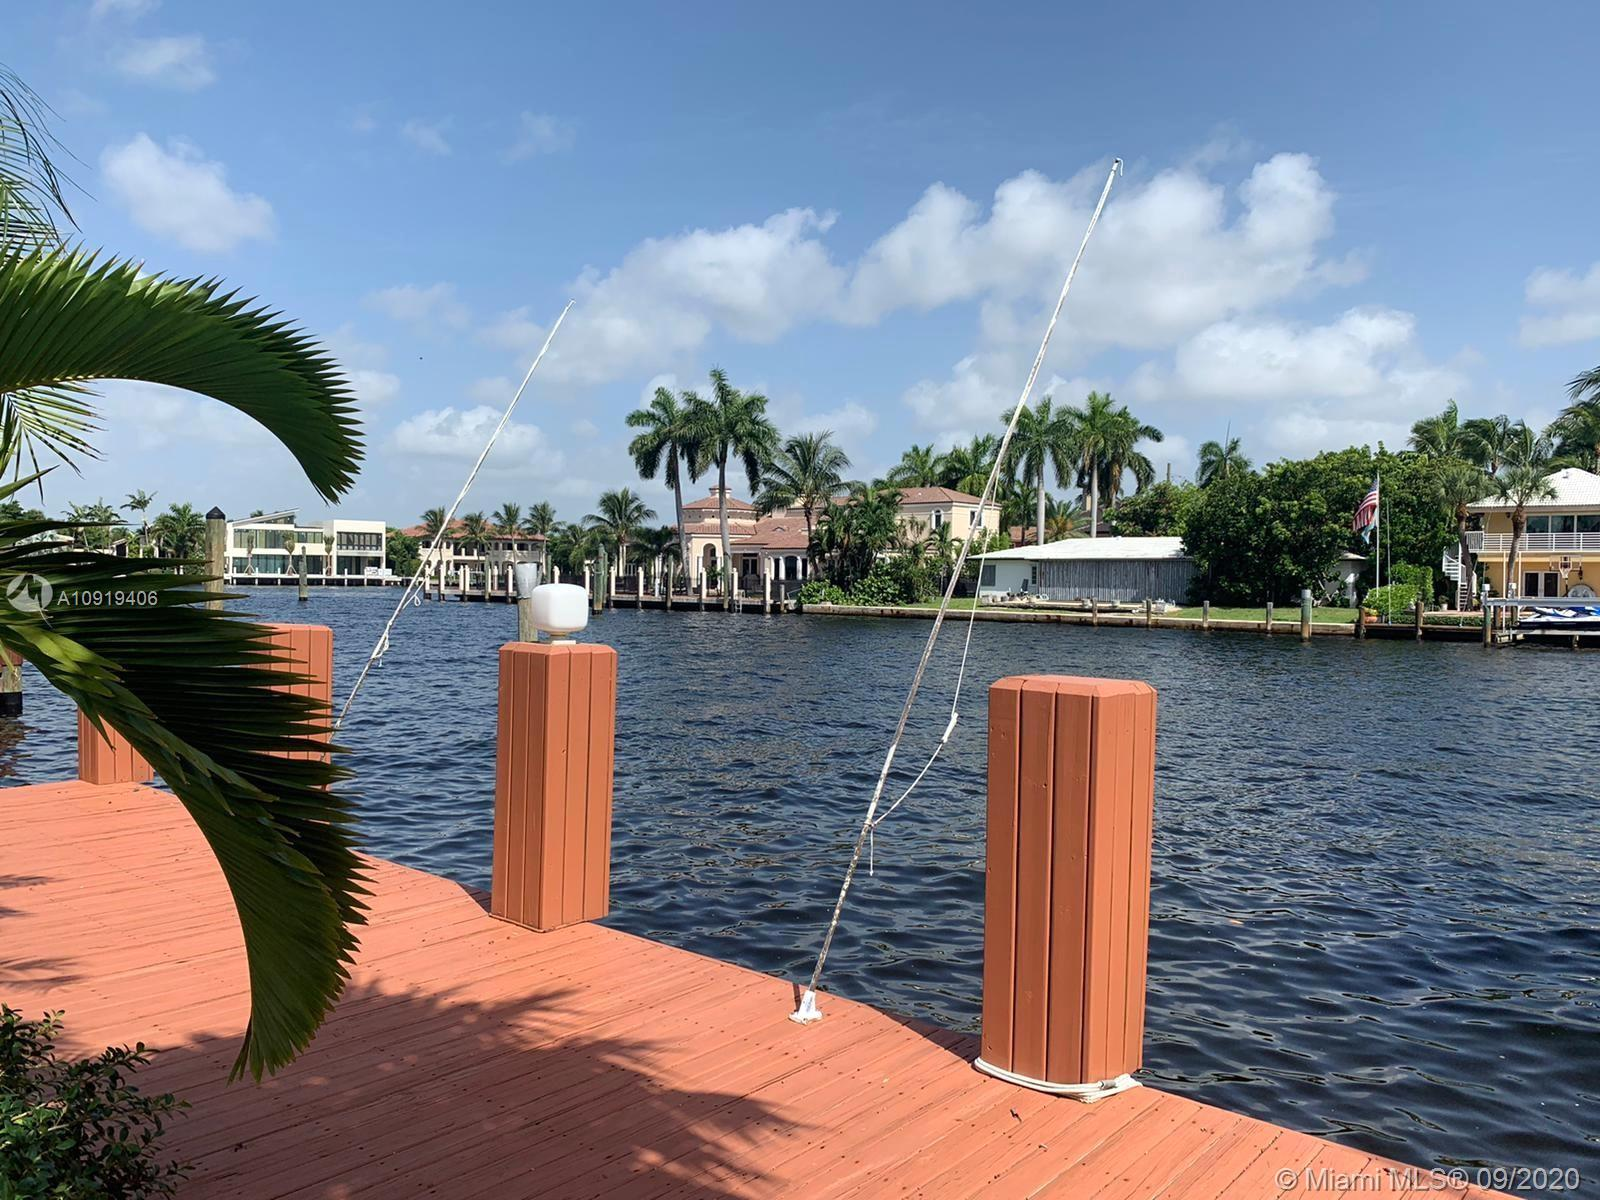 """BEAUTIFUL HOUSE , 200 ft wide canal Newly remodeled """"Magazine Quality Home"""" Wide water and intracostal views 3/3 1/2 /2cg pool , new dock, 2900 sg ft, lush landscaping walk to the beach,courtyard gated entrance,foyer entrance ,open great room, french doors open to the cove red marble patio and pool area with amazing views, new designer kitchen ,granite counters ,formal dining room,3 bedrooms in suite designer baths,split floor plan,plus guest 1/2 bath , inside laundry room, HIGH IMPACT WINDWOWS Private gate to park and Beach access BEST PRICE FOR A QUICK SALE dont miss This opportunity 40 FT DOCK"""